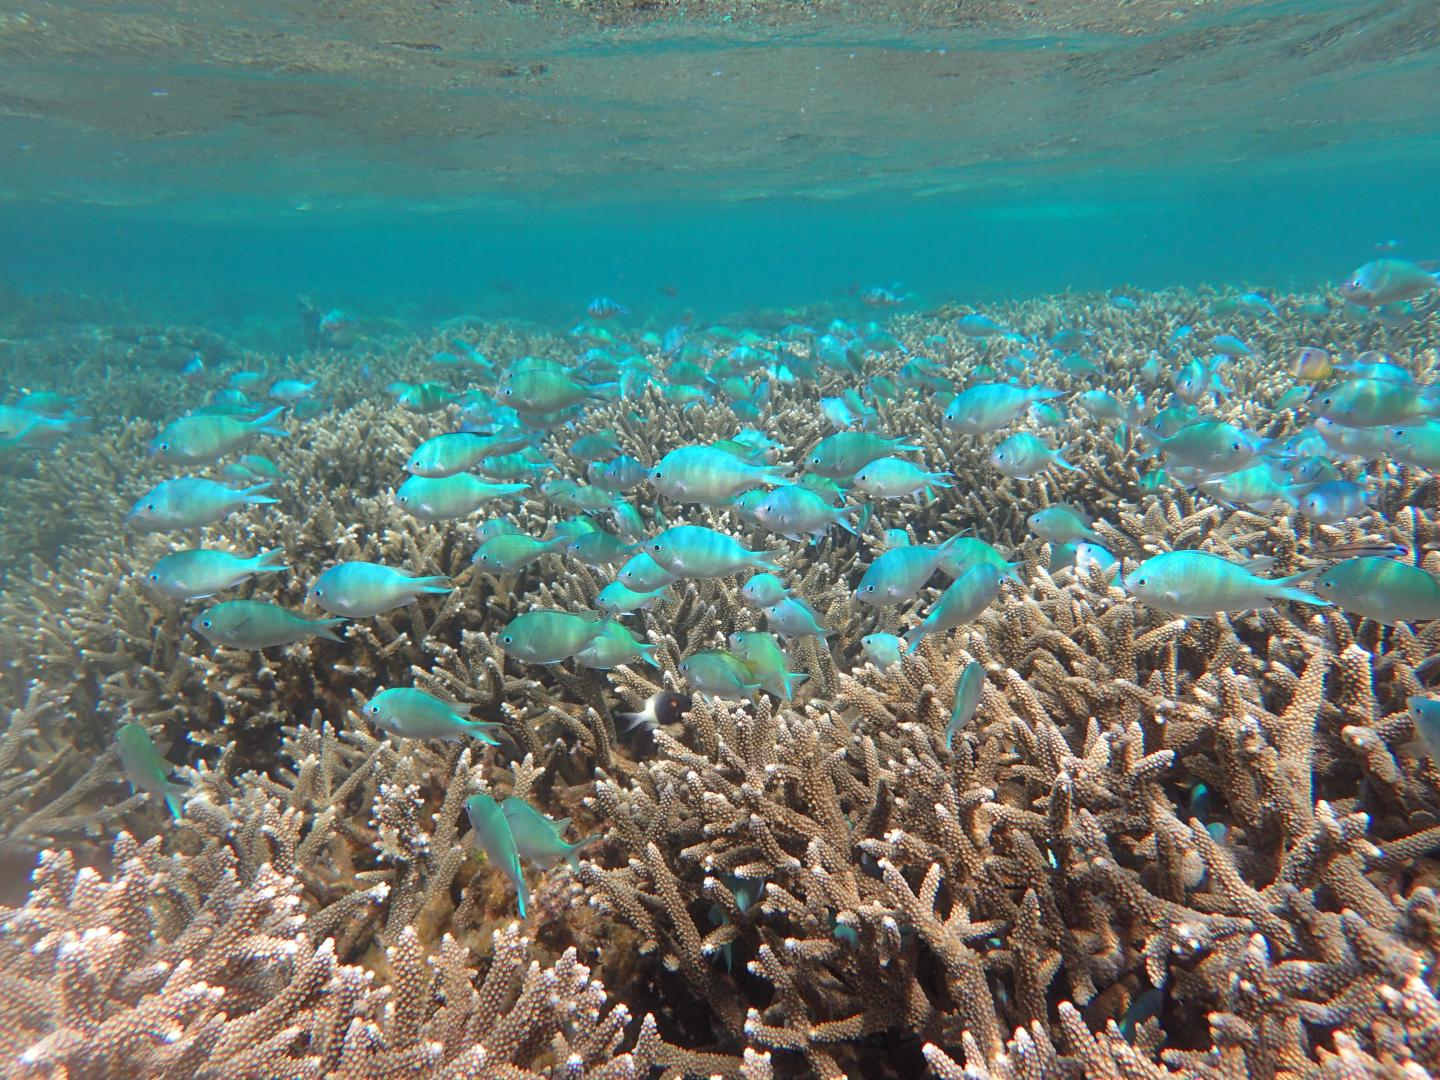 c74724045 Marine ecosystems show resilience to climate disturbance